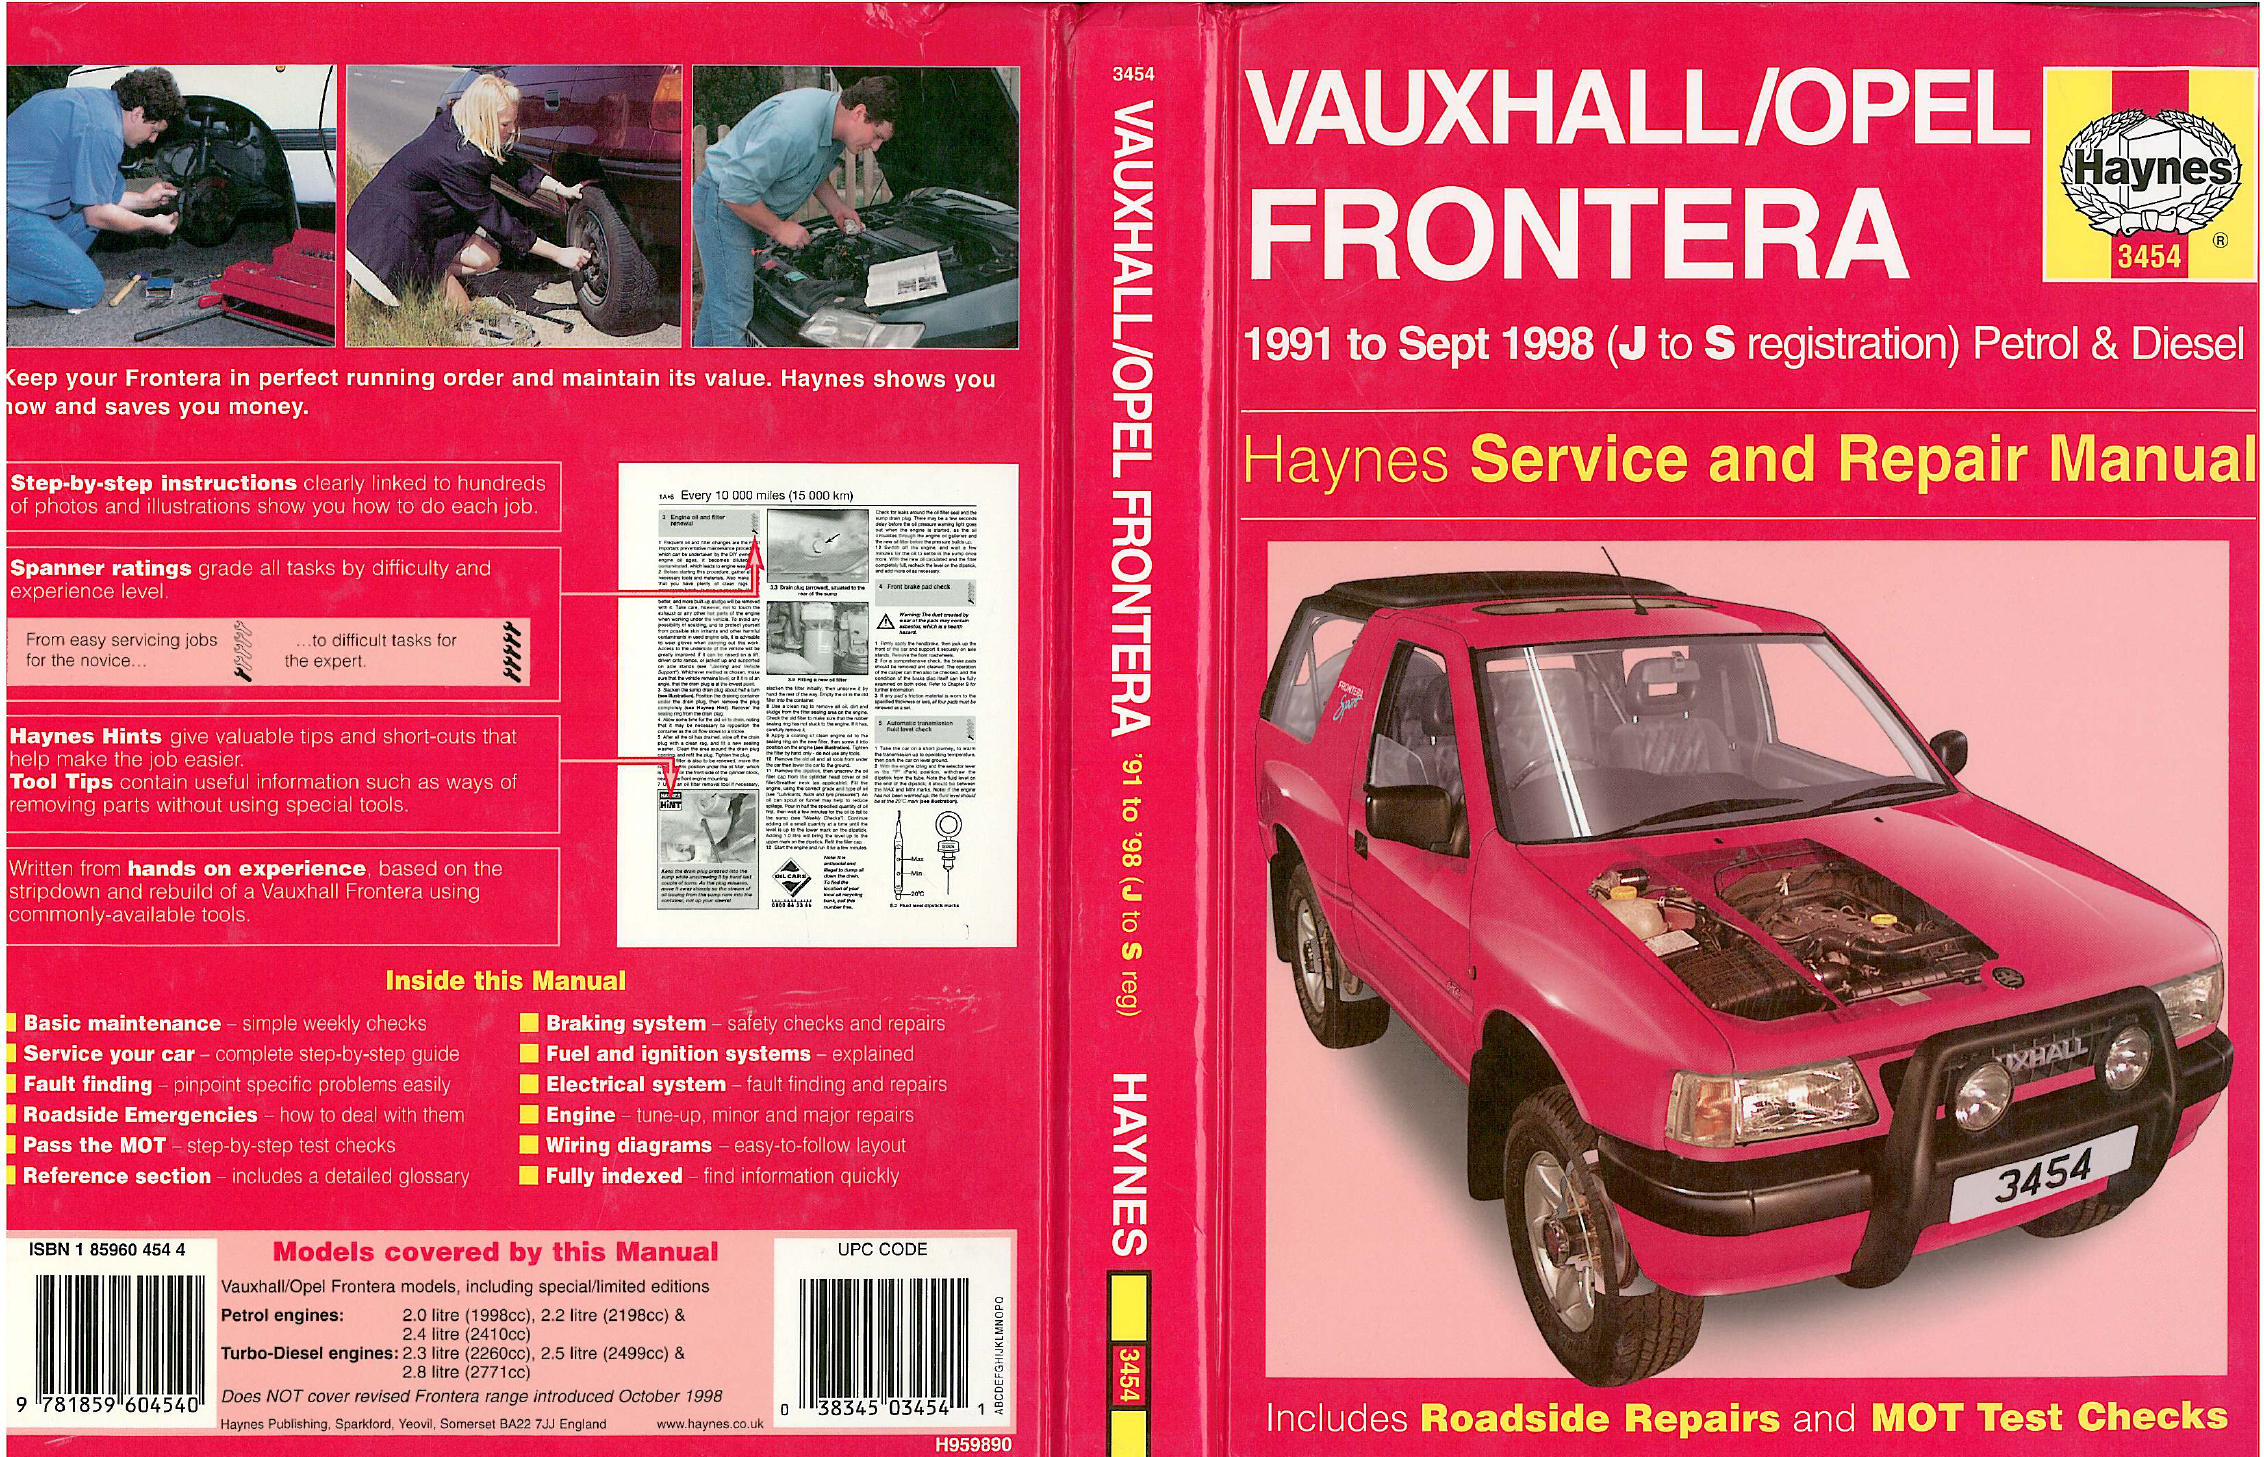 See our other Opel Frontera Manuals: Opel Frontera 1991 1998 Workshop ...